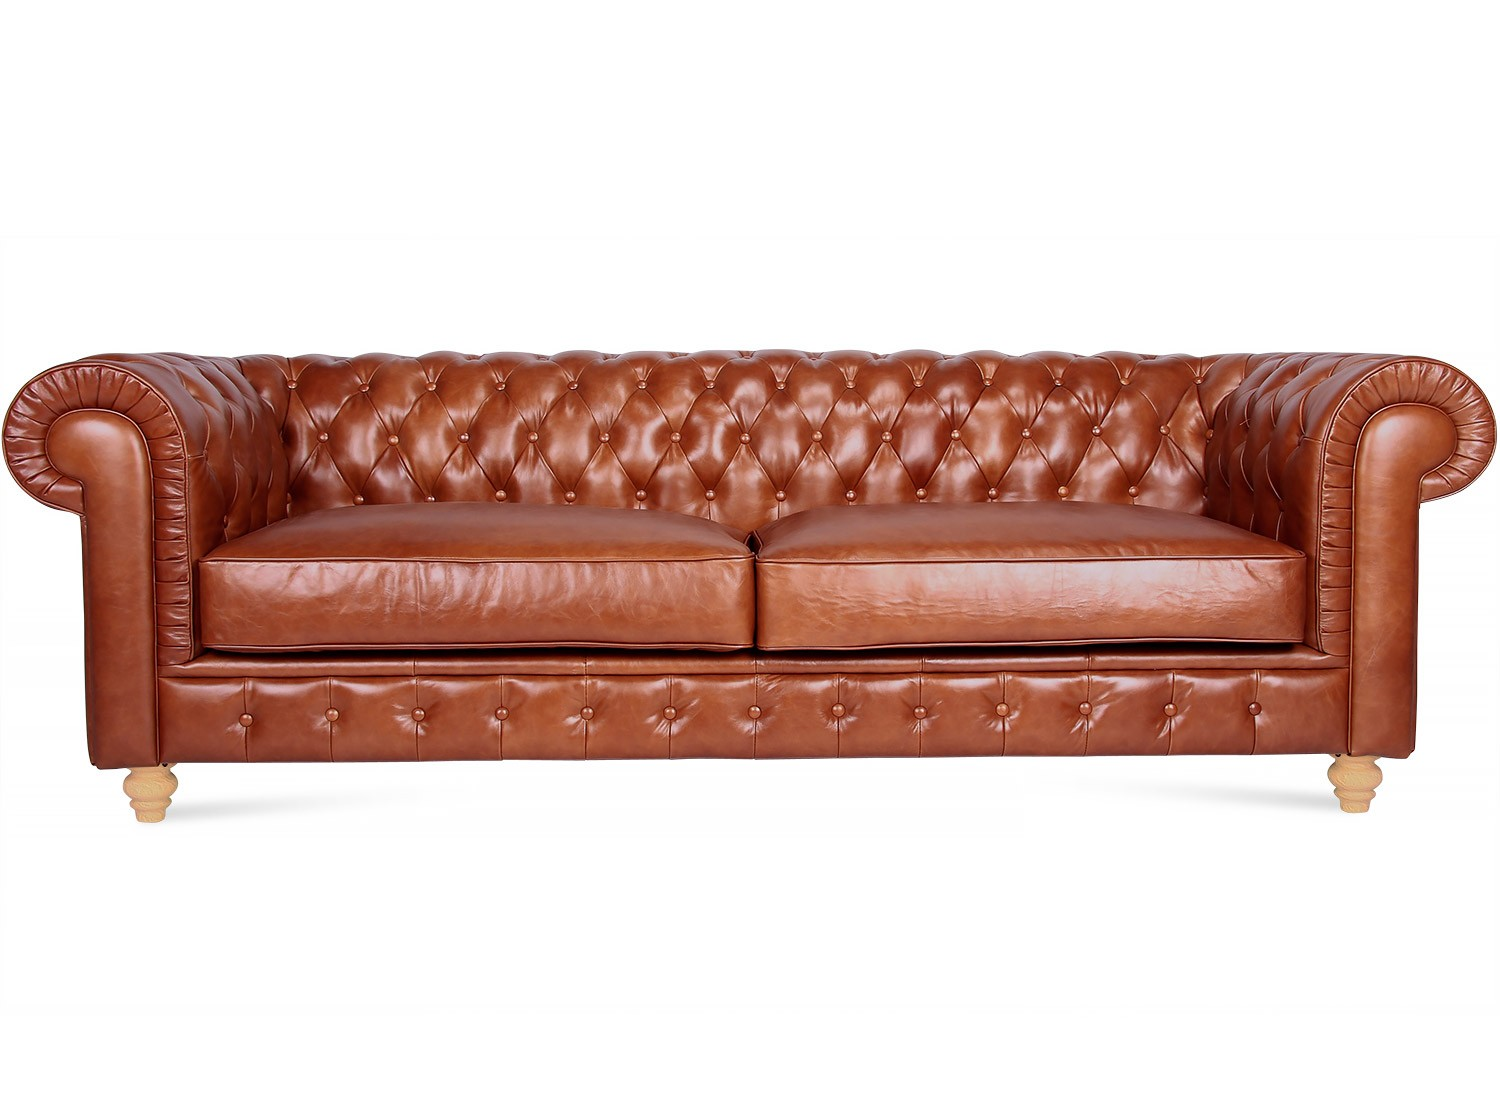 Chesterfield Sofa 3 Seater Chicicat